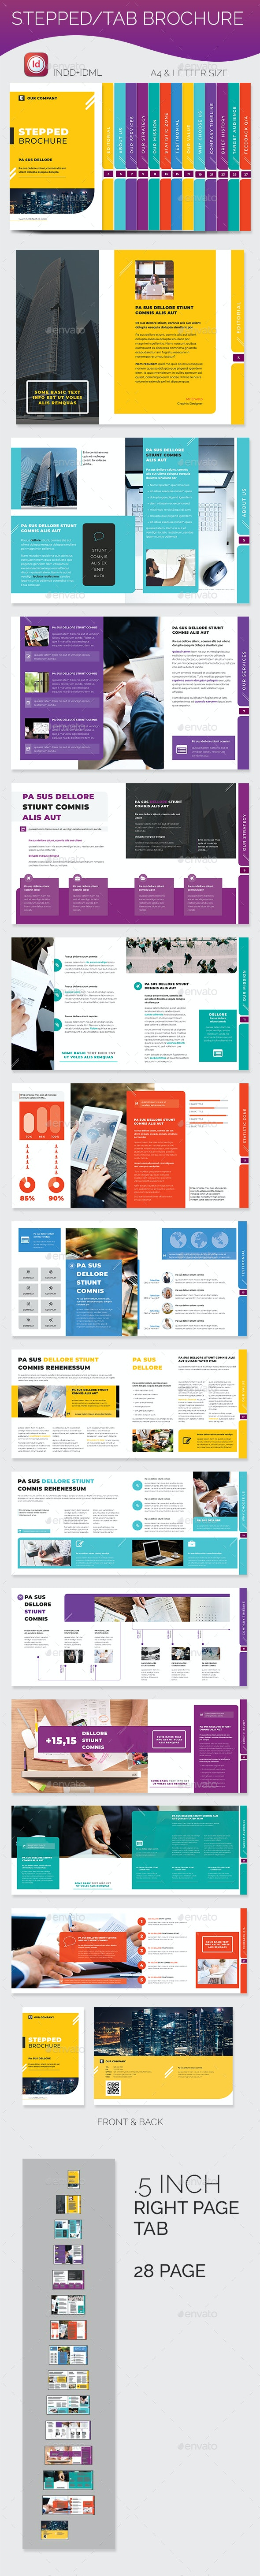 Stepped Tab Brochure - Brochures Print Templates